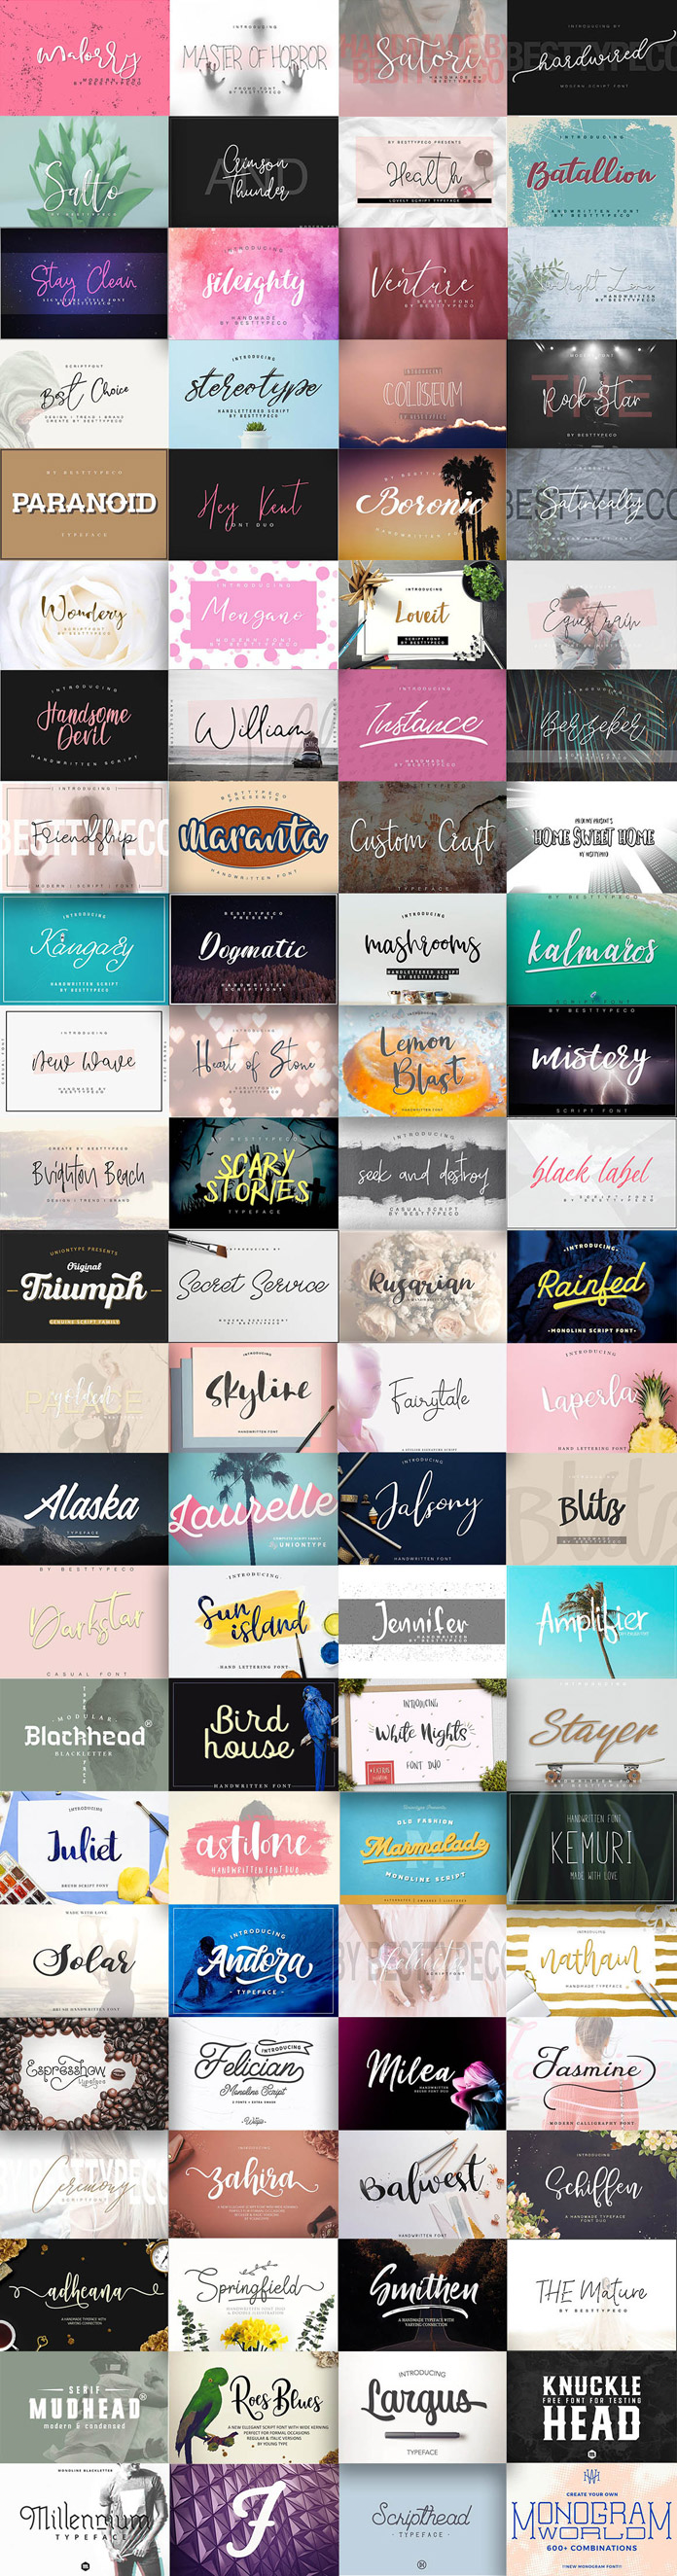 91 font families with extended license - 98% off.